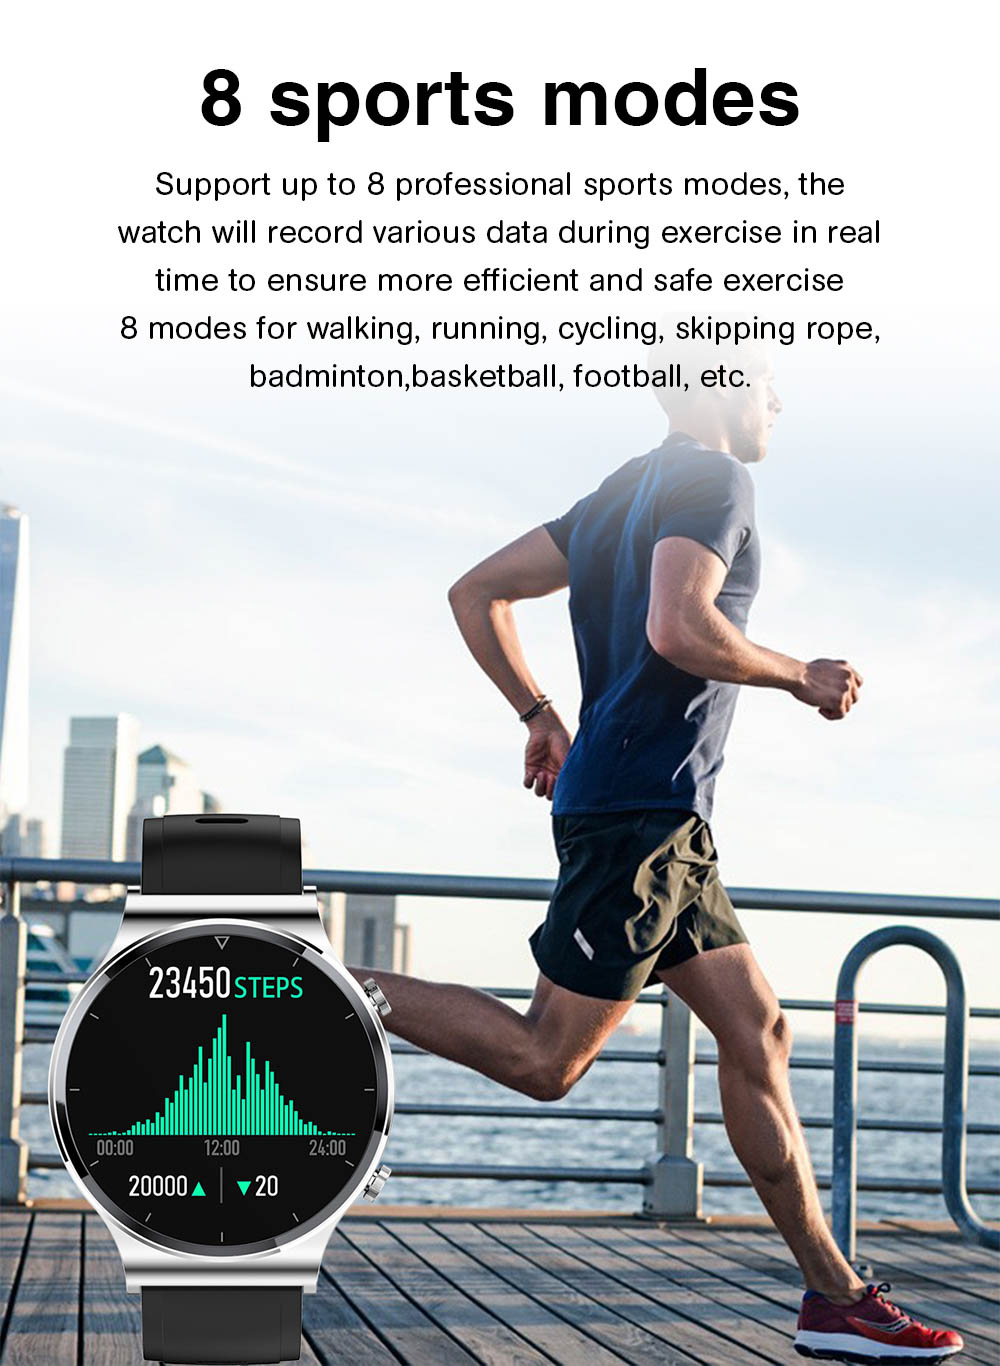 He8499ce7646a40109483244ce3ef5019b NUOBO 2021 New Smart Watch Men Bluetooth Call Heart Rate Blood Pressure Sports IP68 Waterproof Smartwatch for Android IOS Phone